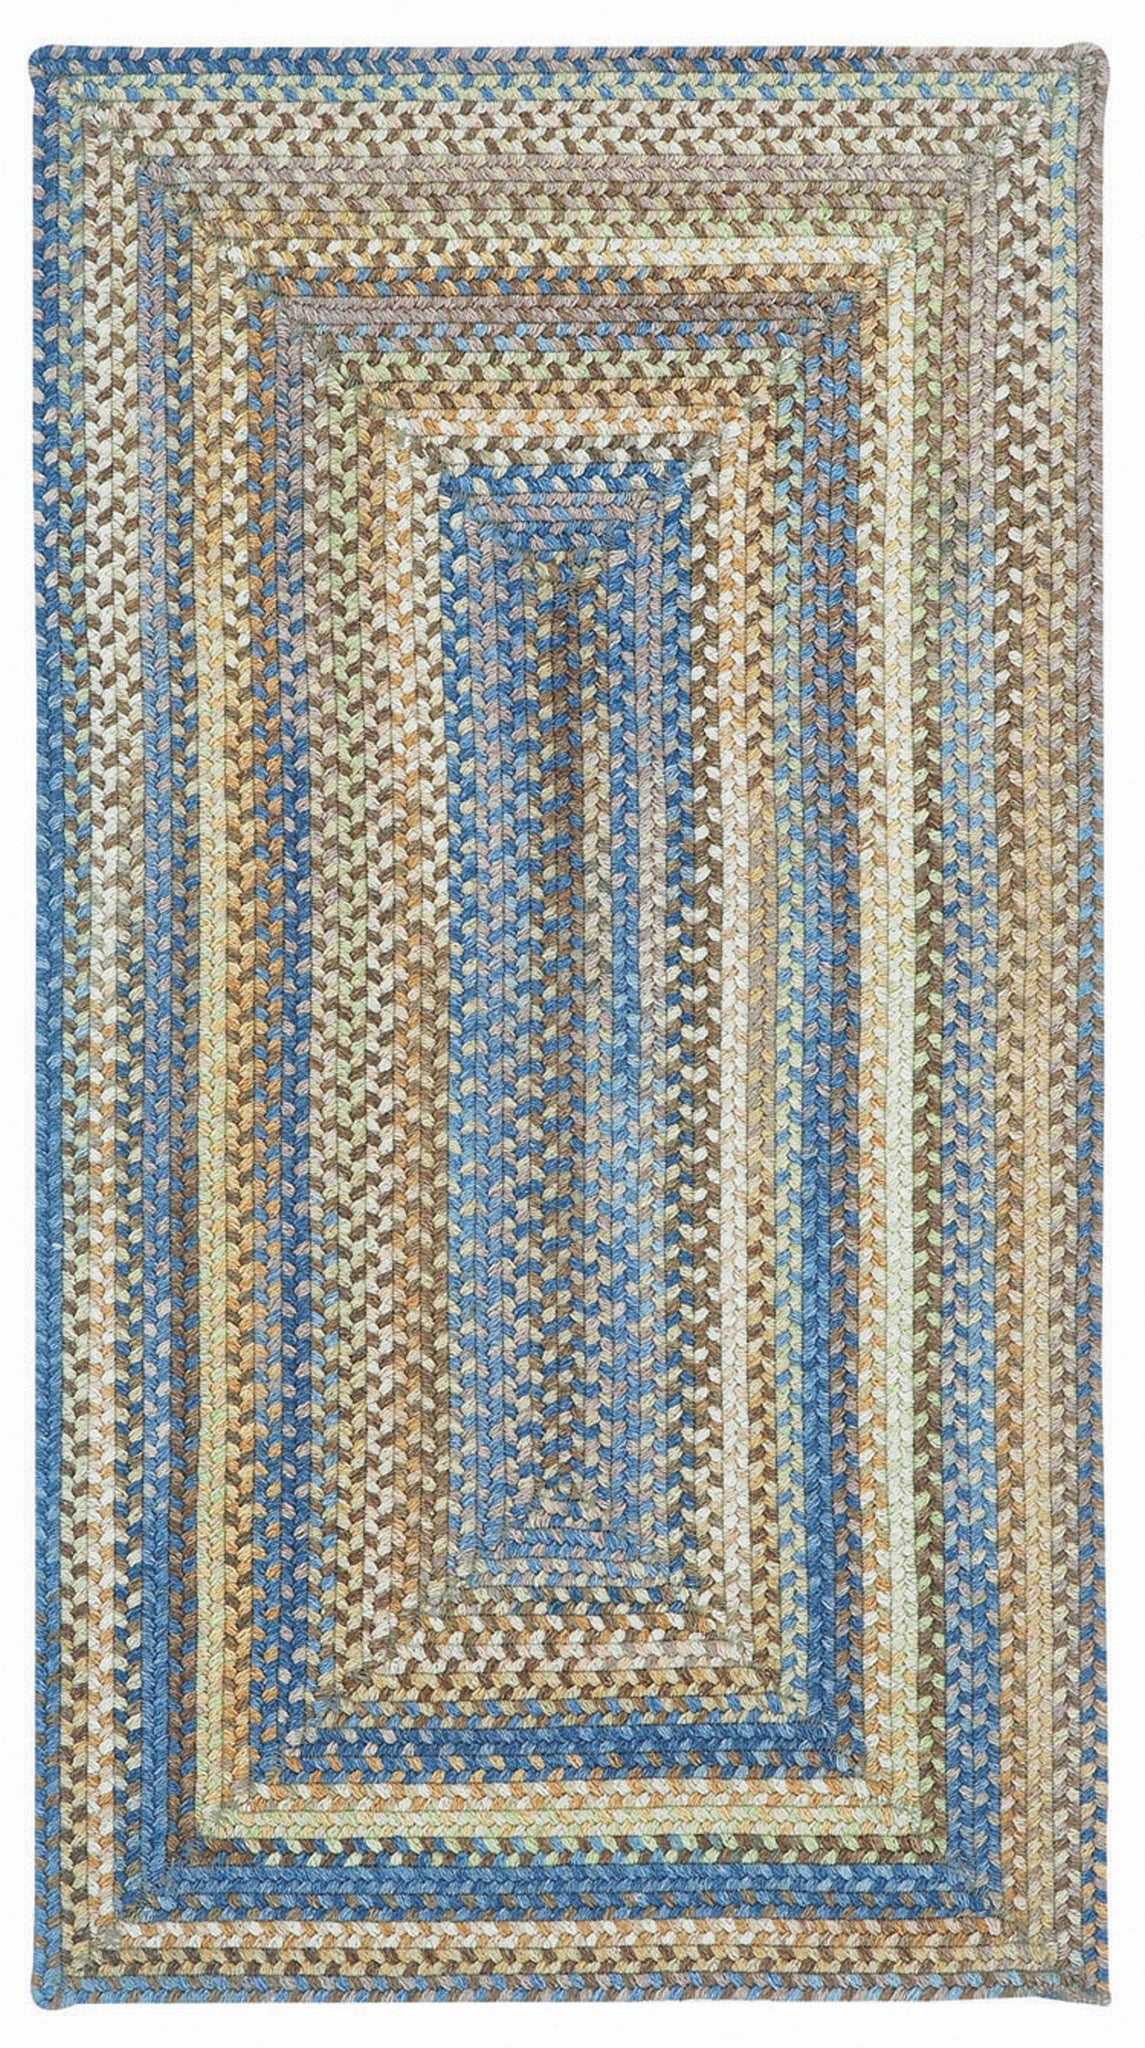 Capel Kill Devil Hill 0210 Light Blue 410 Area Rug main image